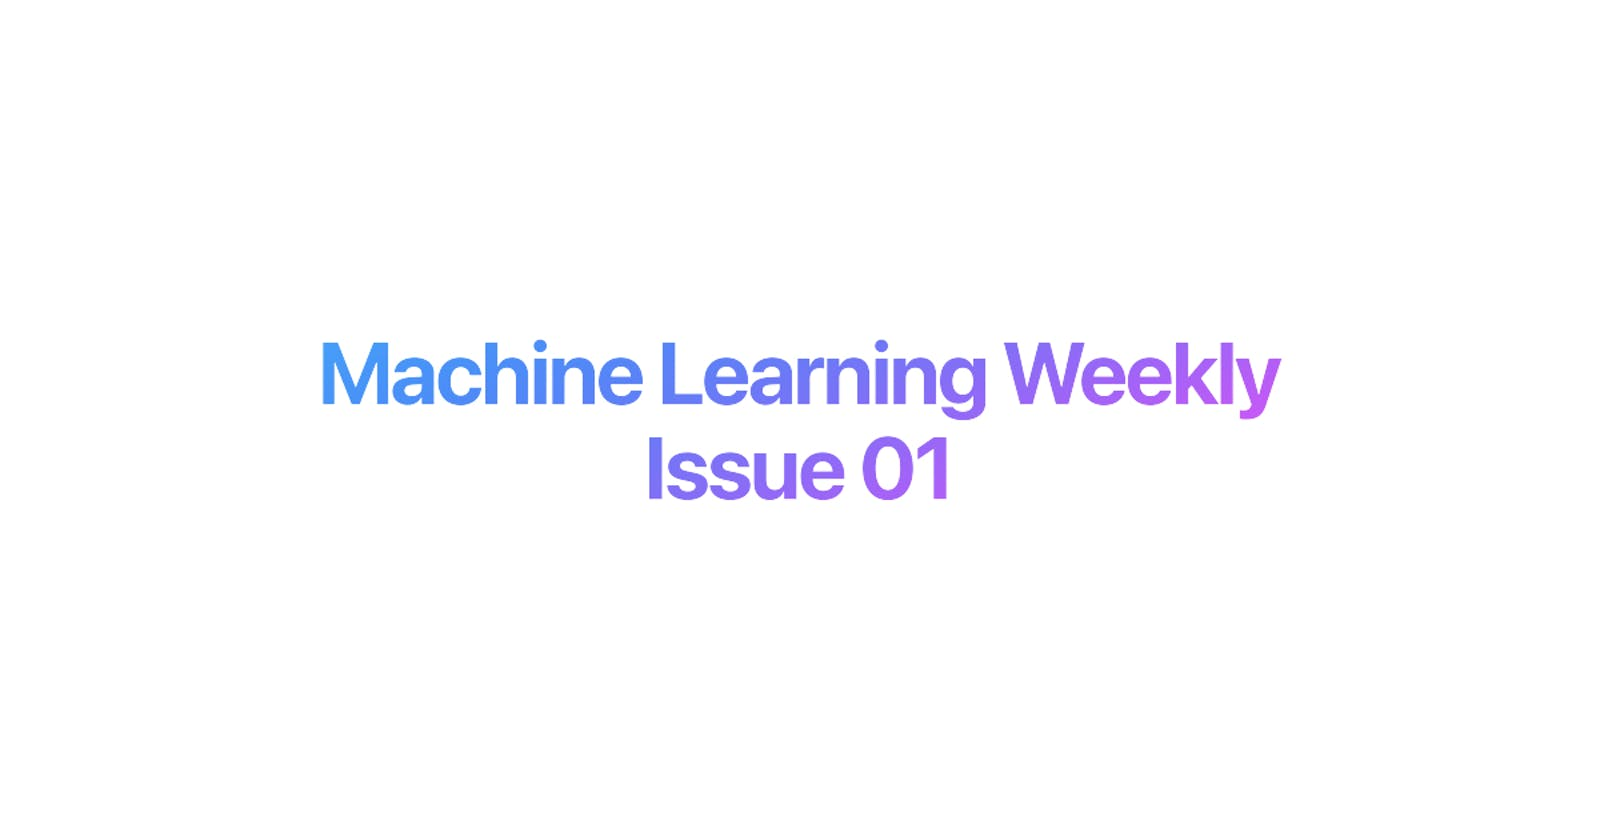 Machine Learning Weekly Issue #01